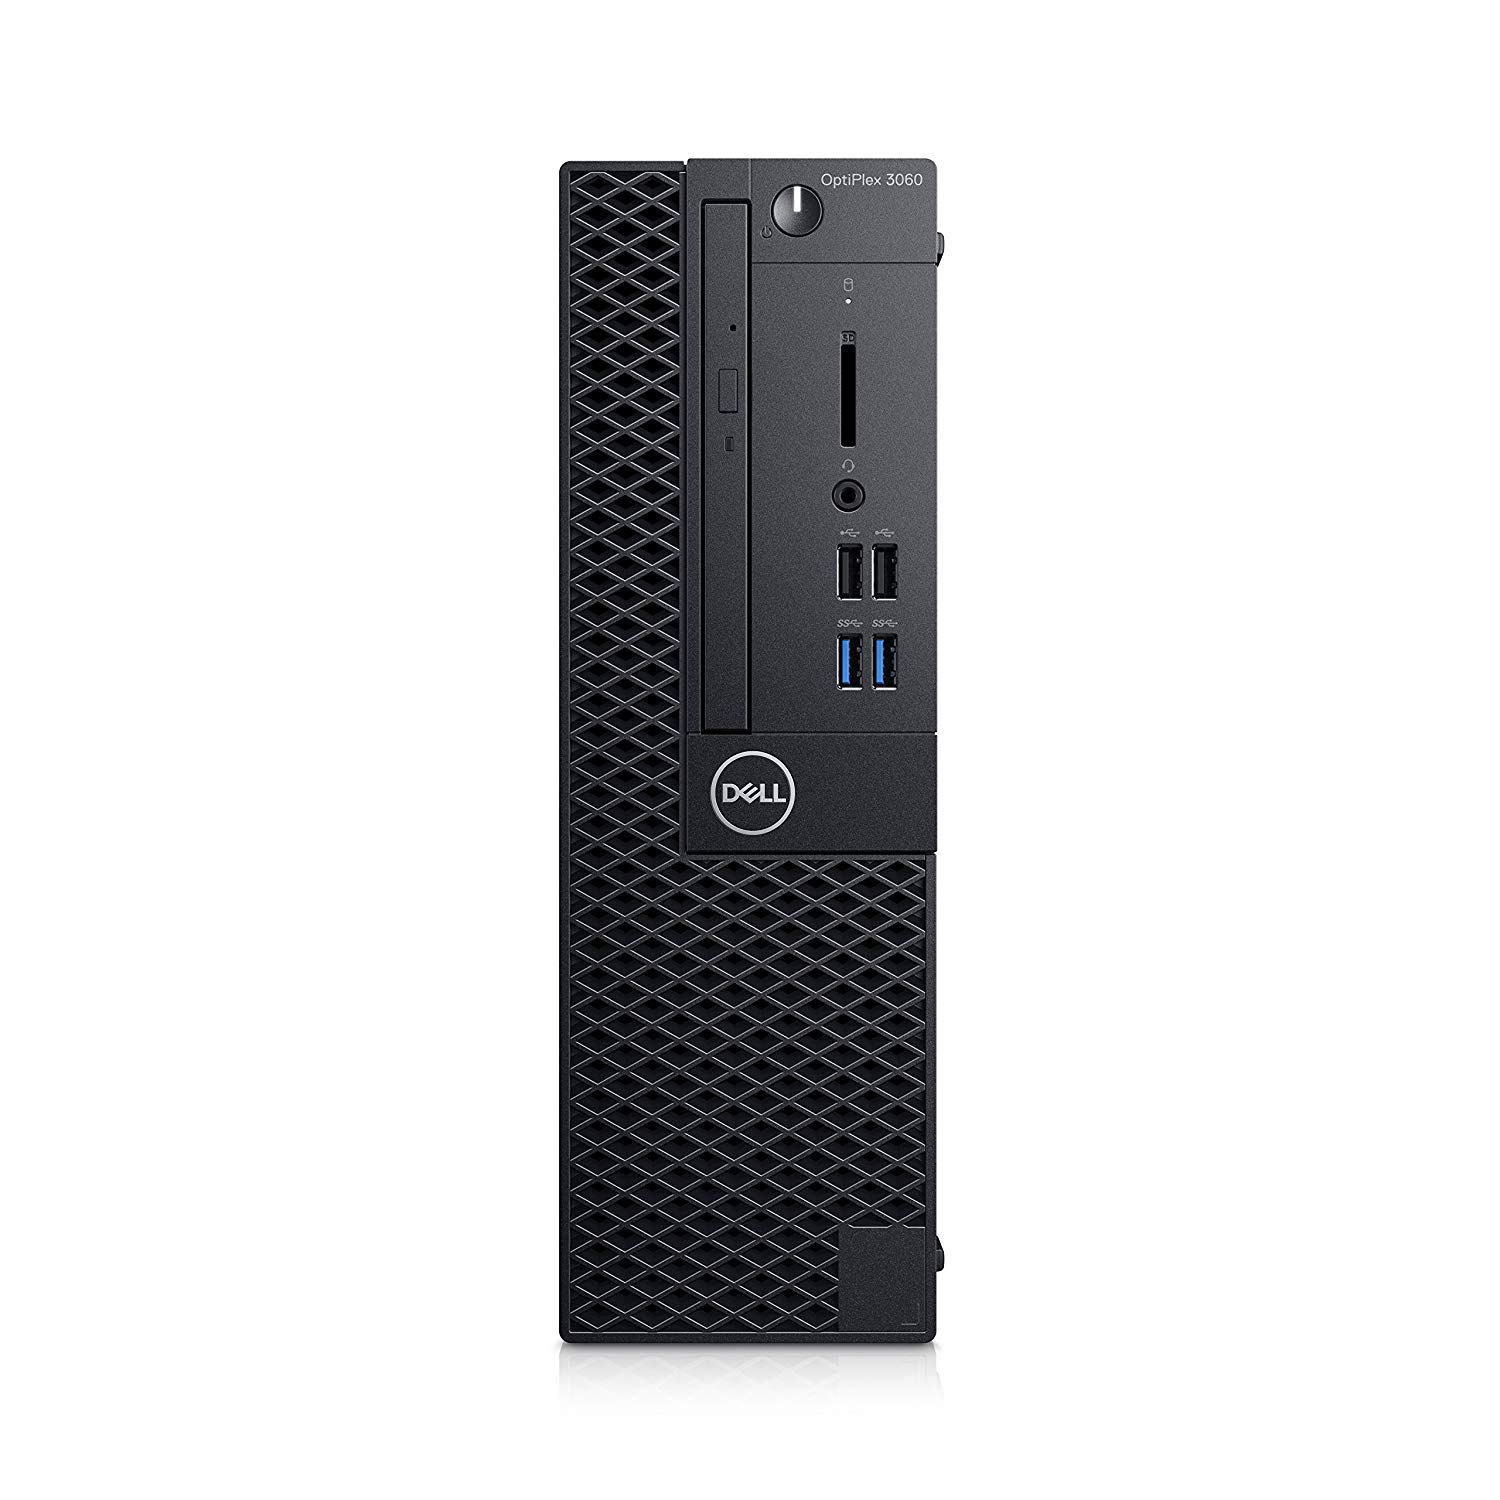 Dell Opti 3060 SFF i5 4GB 500GB PC